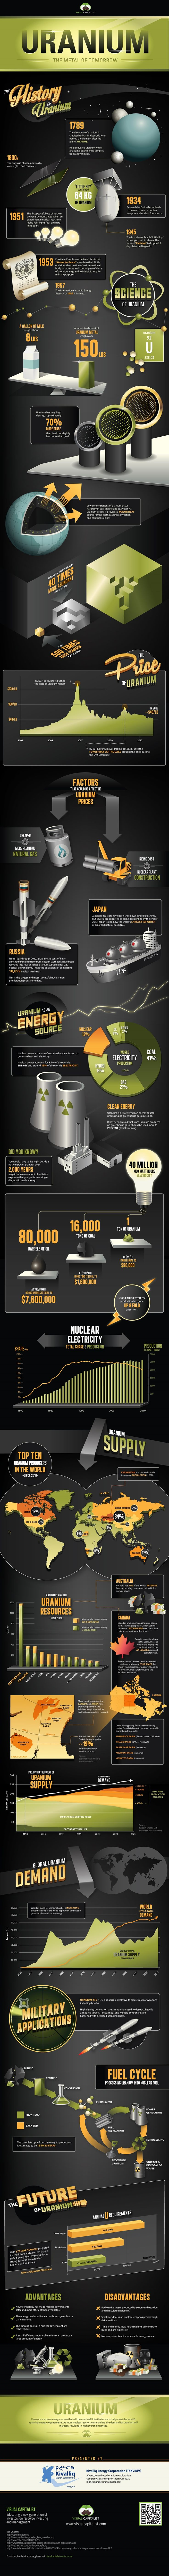 Infographic: Uranium, the Metal of Tomorrow